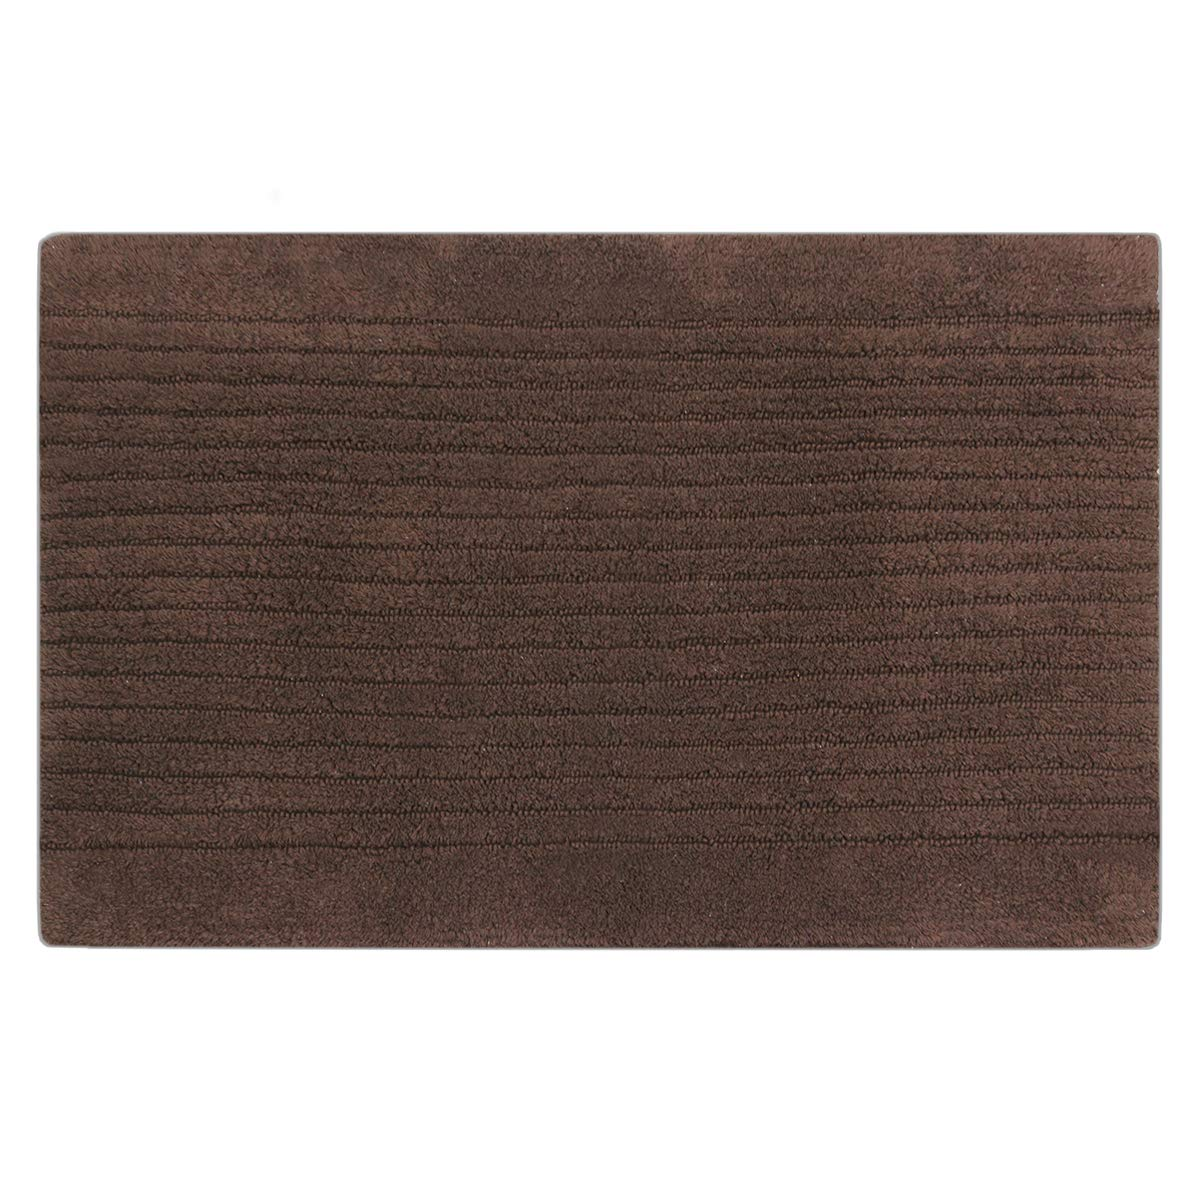 Clairvoyance Bath Mat, Reversible Bathroom Rug, Soft Cotton- Water Absorbent (21'' x 34''), Brown by Clairvoyance